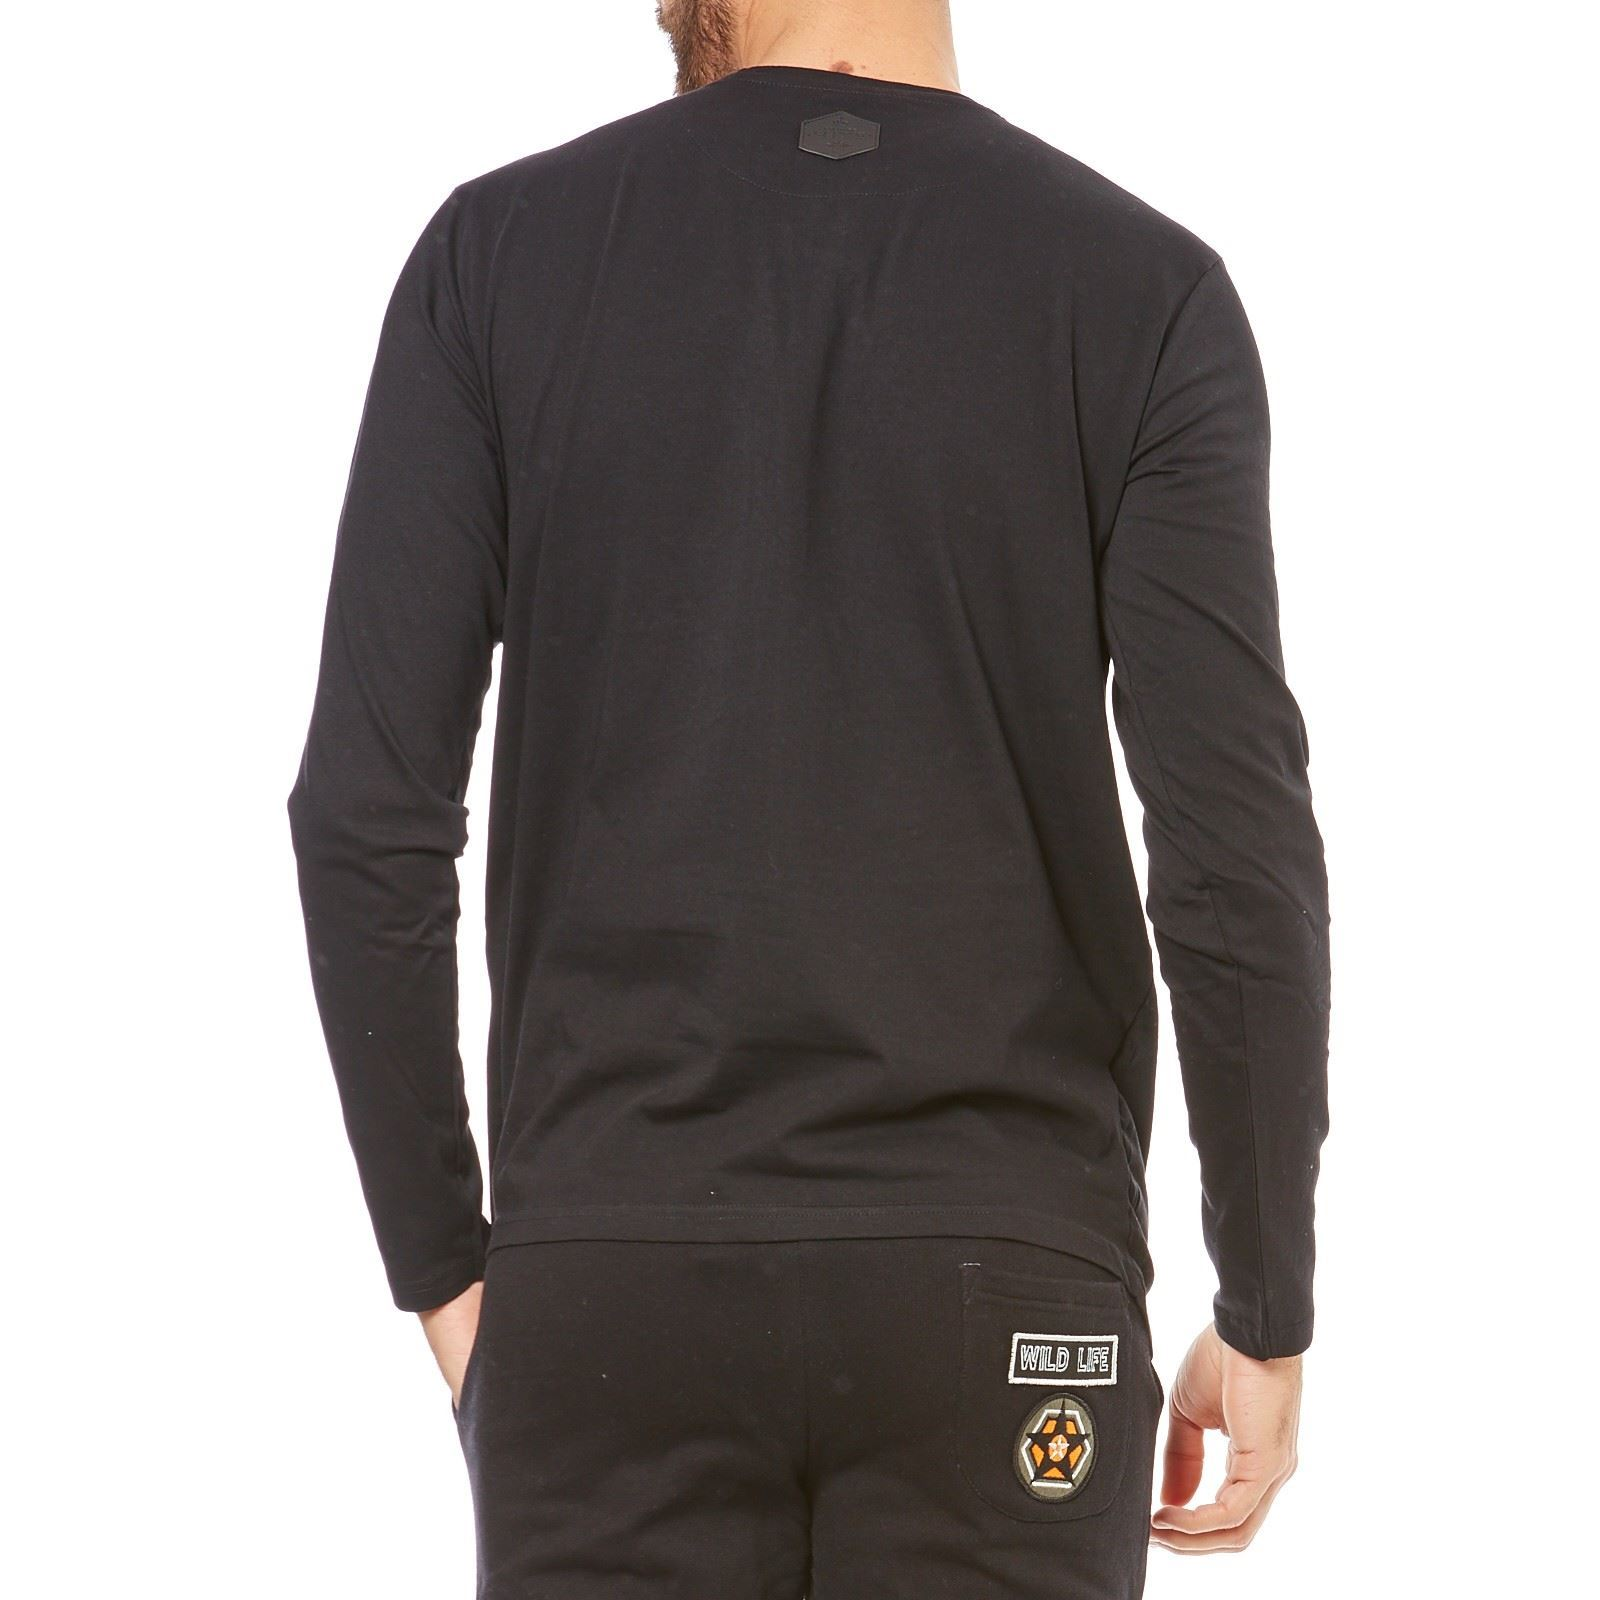 Hite couture t shirt manches courtes noir brandalley for Hite couture